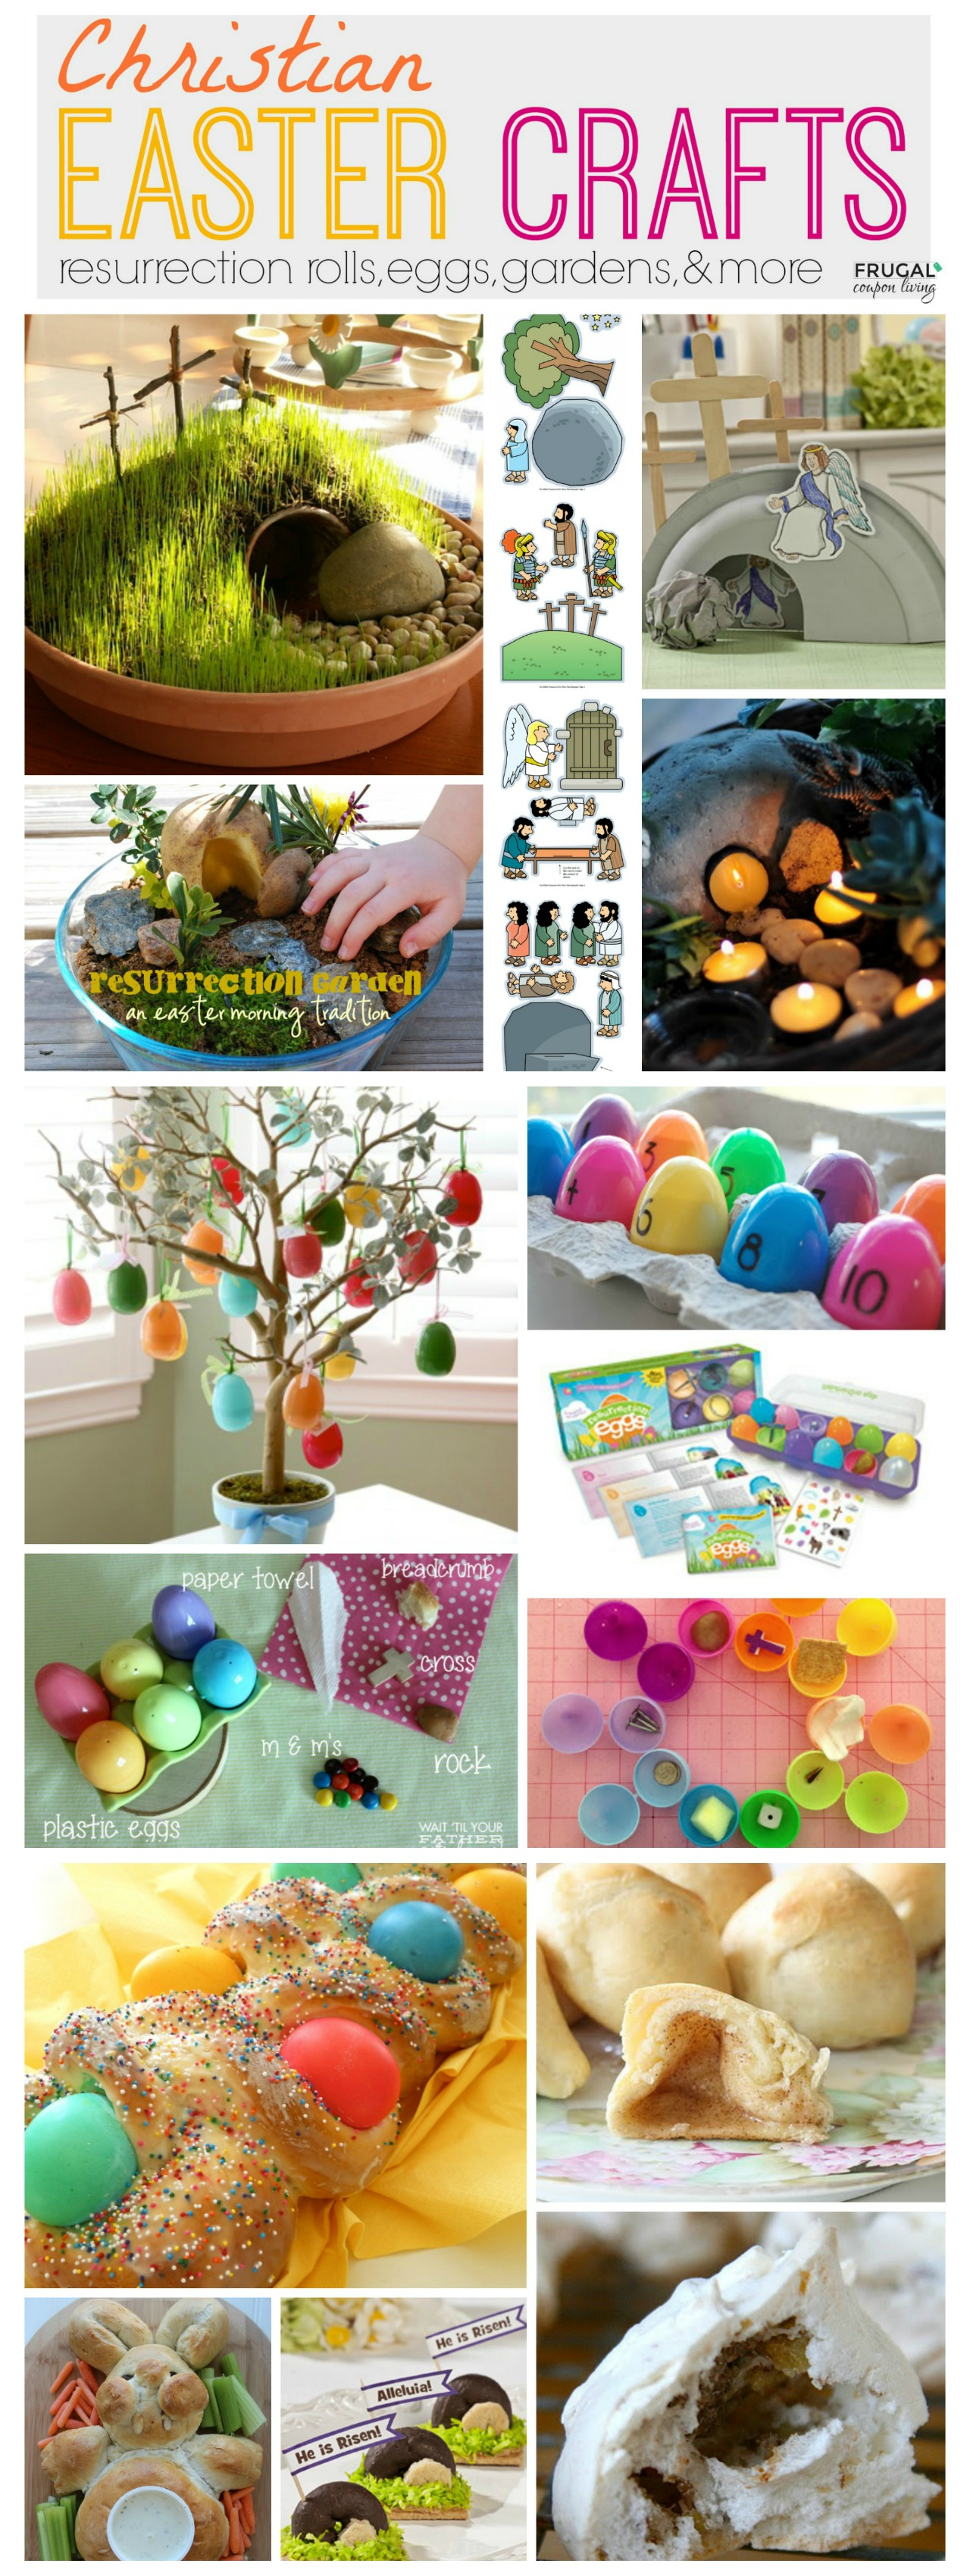 Christian-Easter-Crafts-Resurrection-Frugal-Coupon-Living